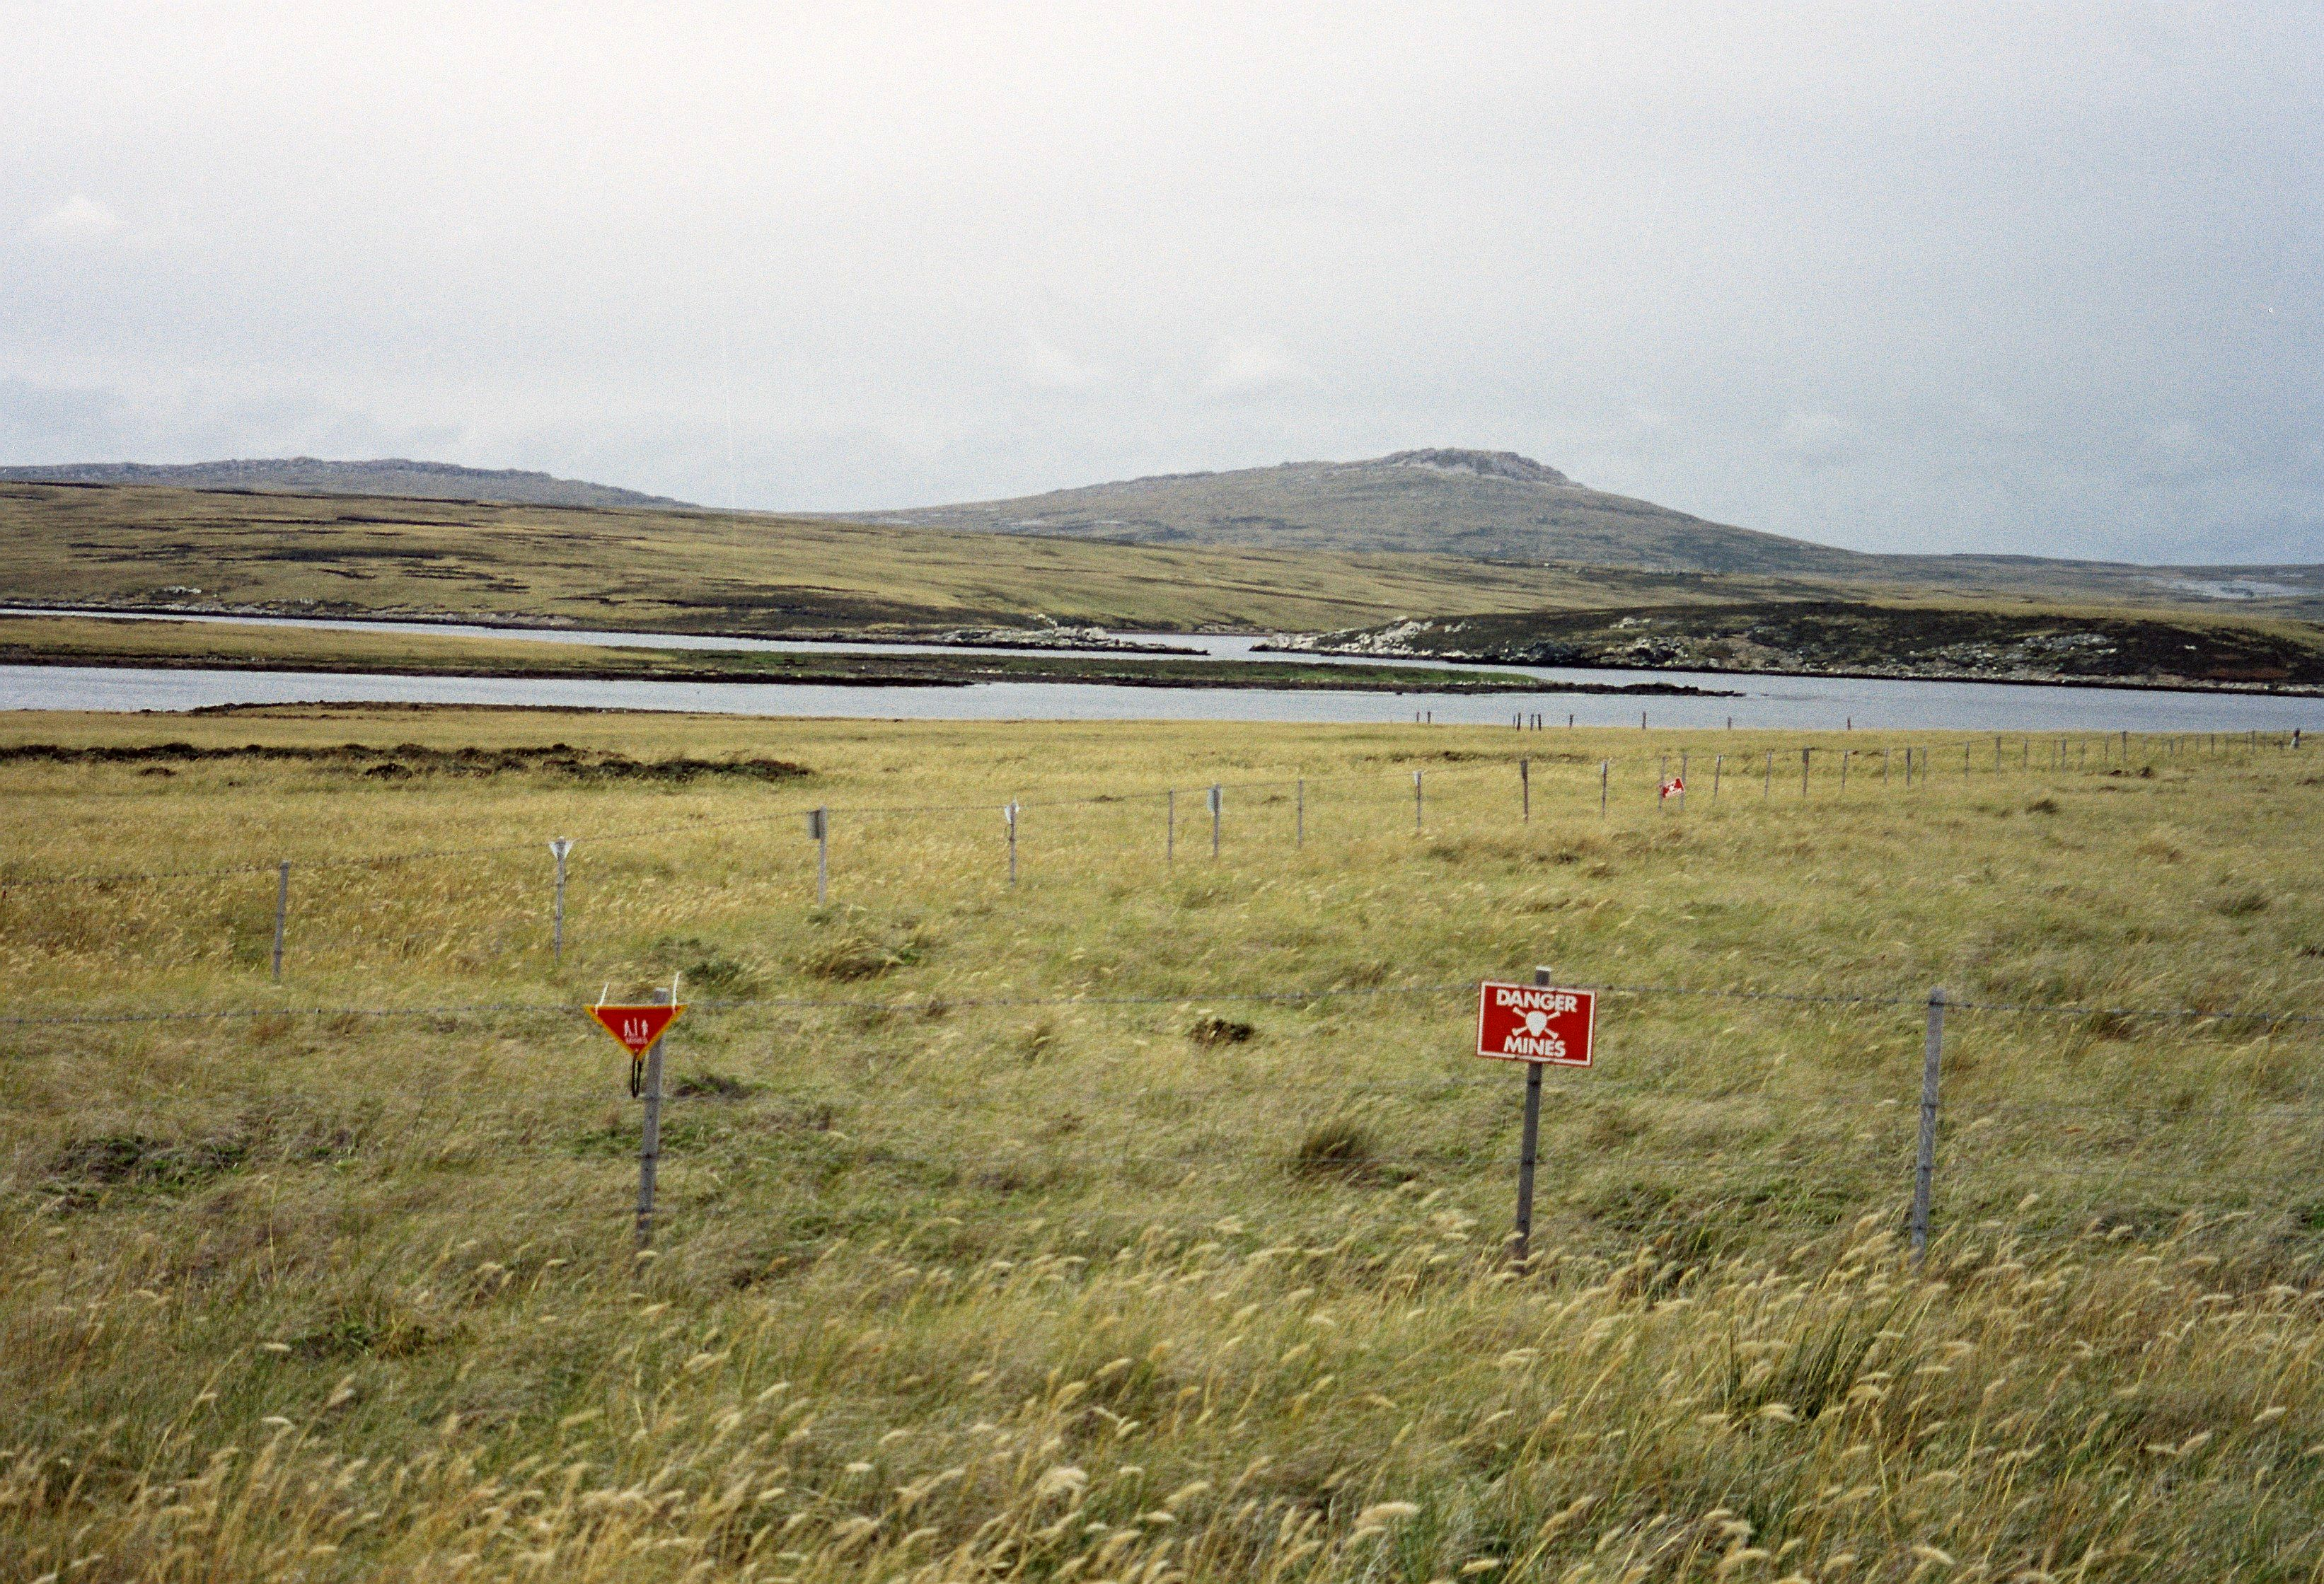 The longest minefield of the world